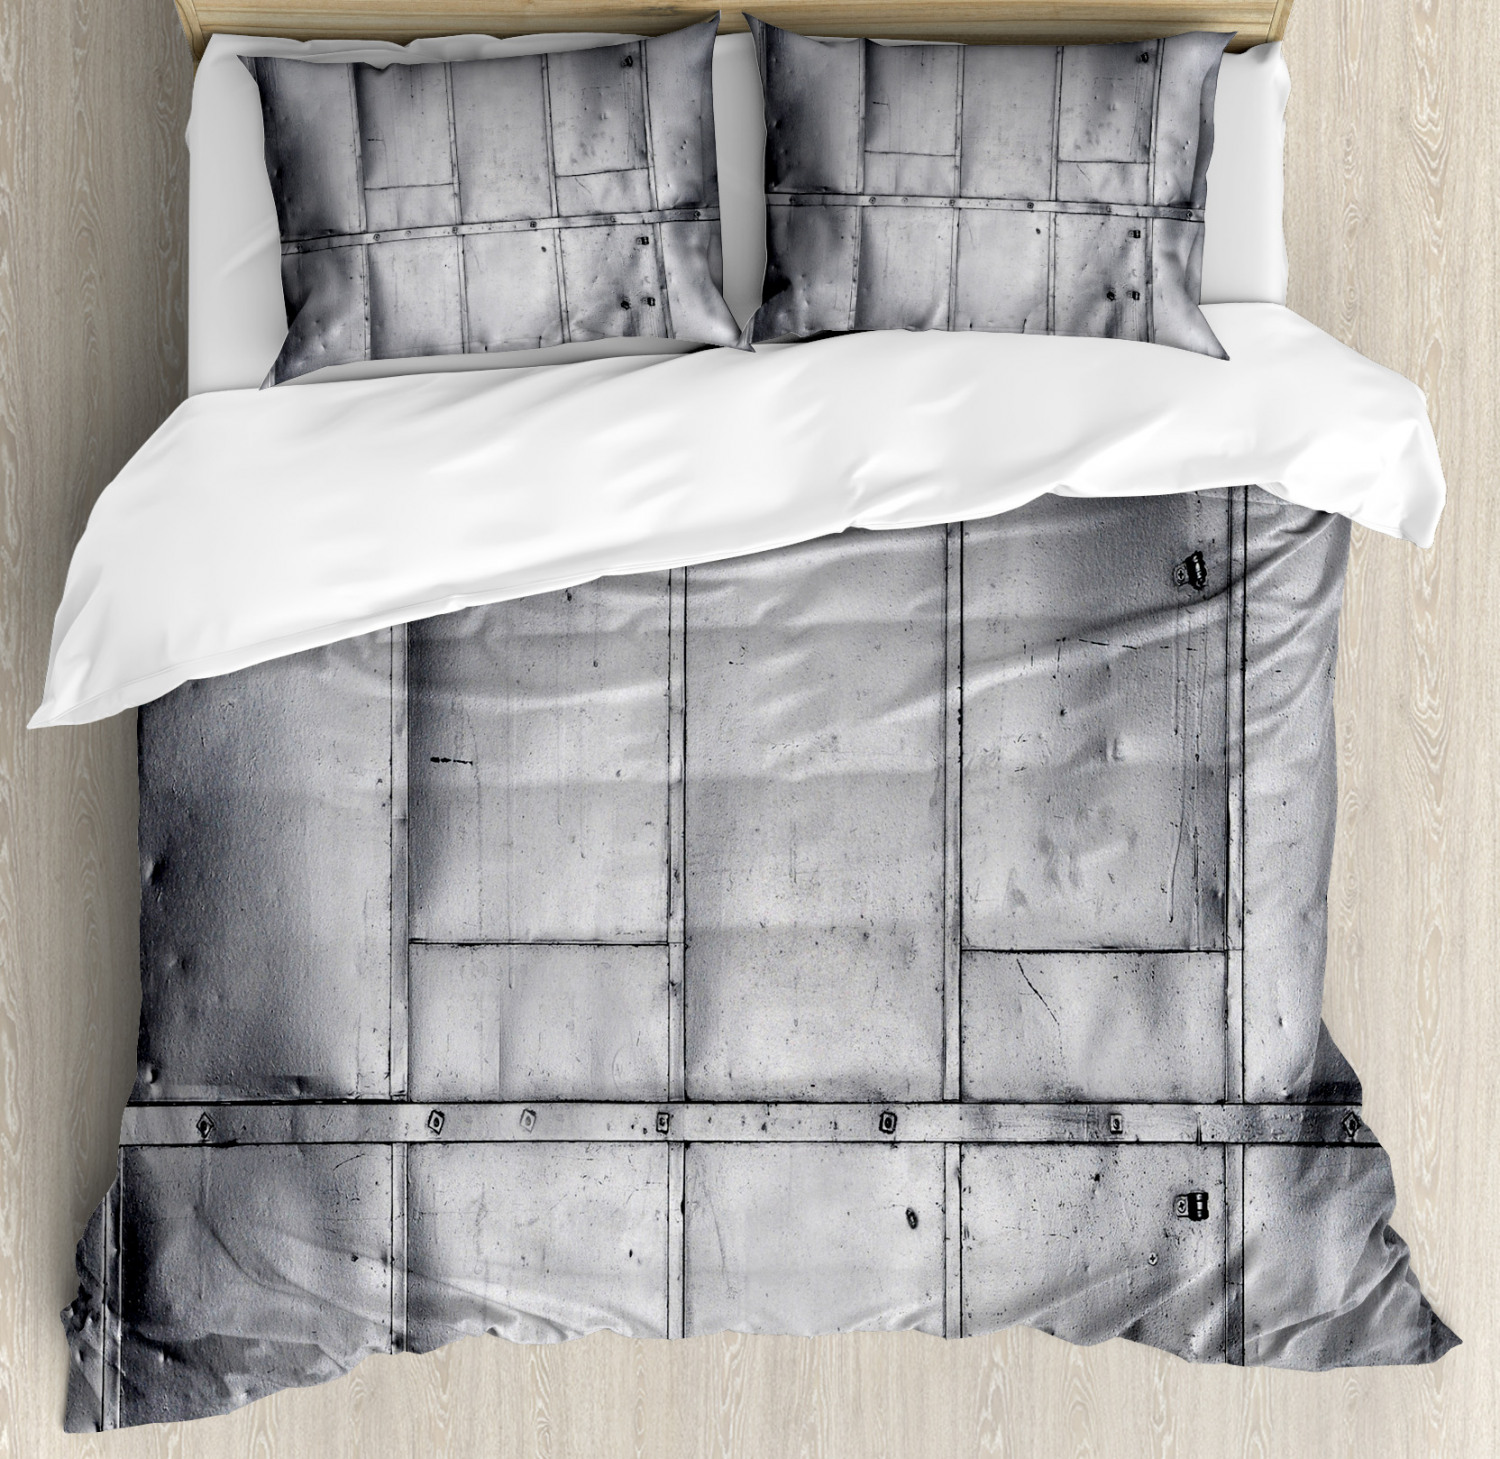 Industrial Duvet Cover Set with Pillow Shams Futuristic Panels Print